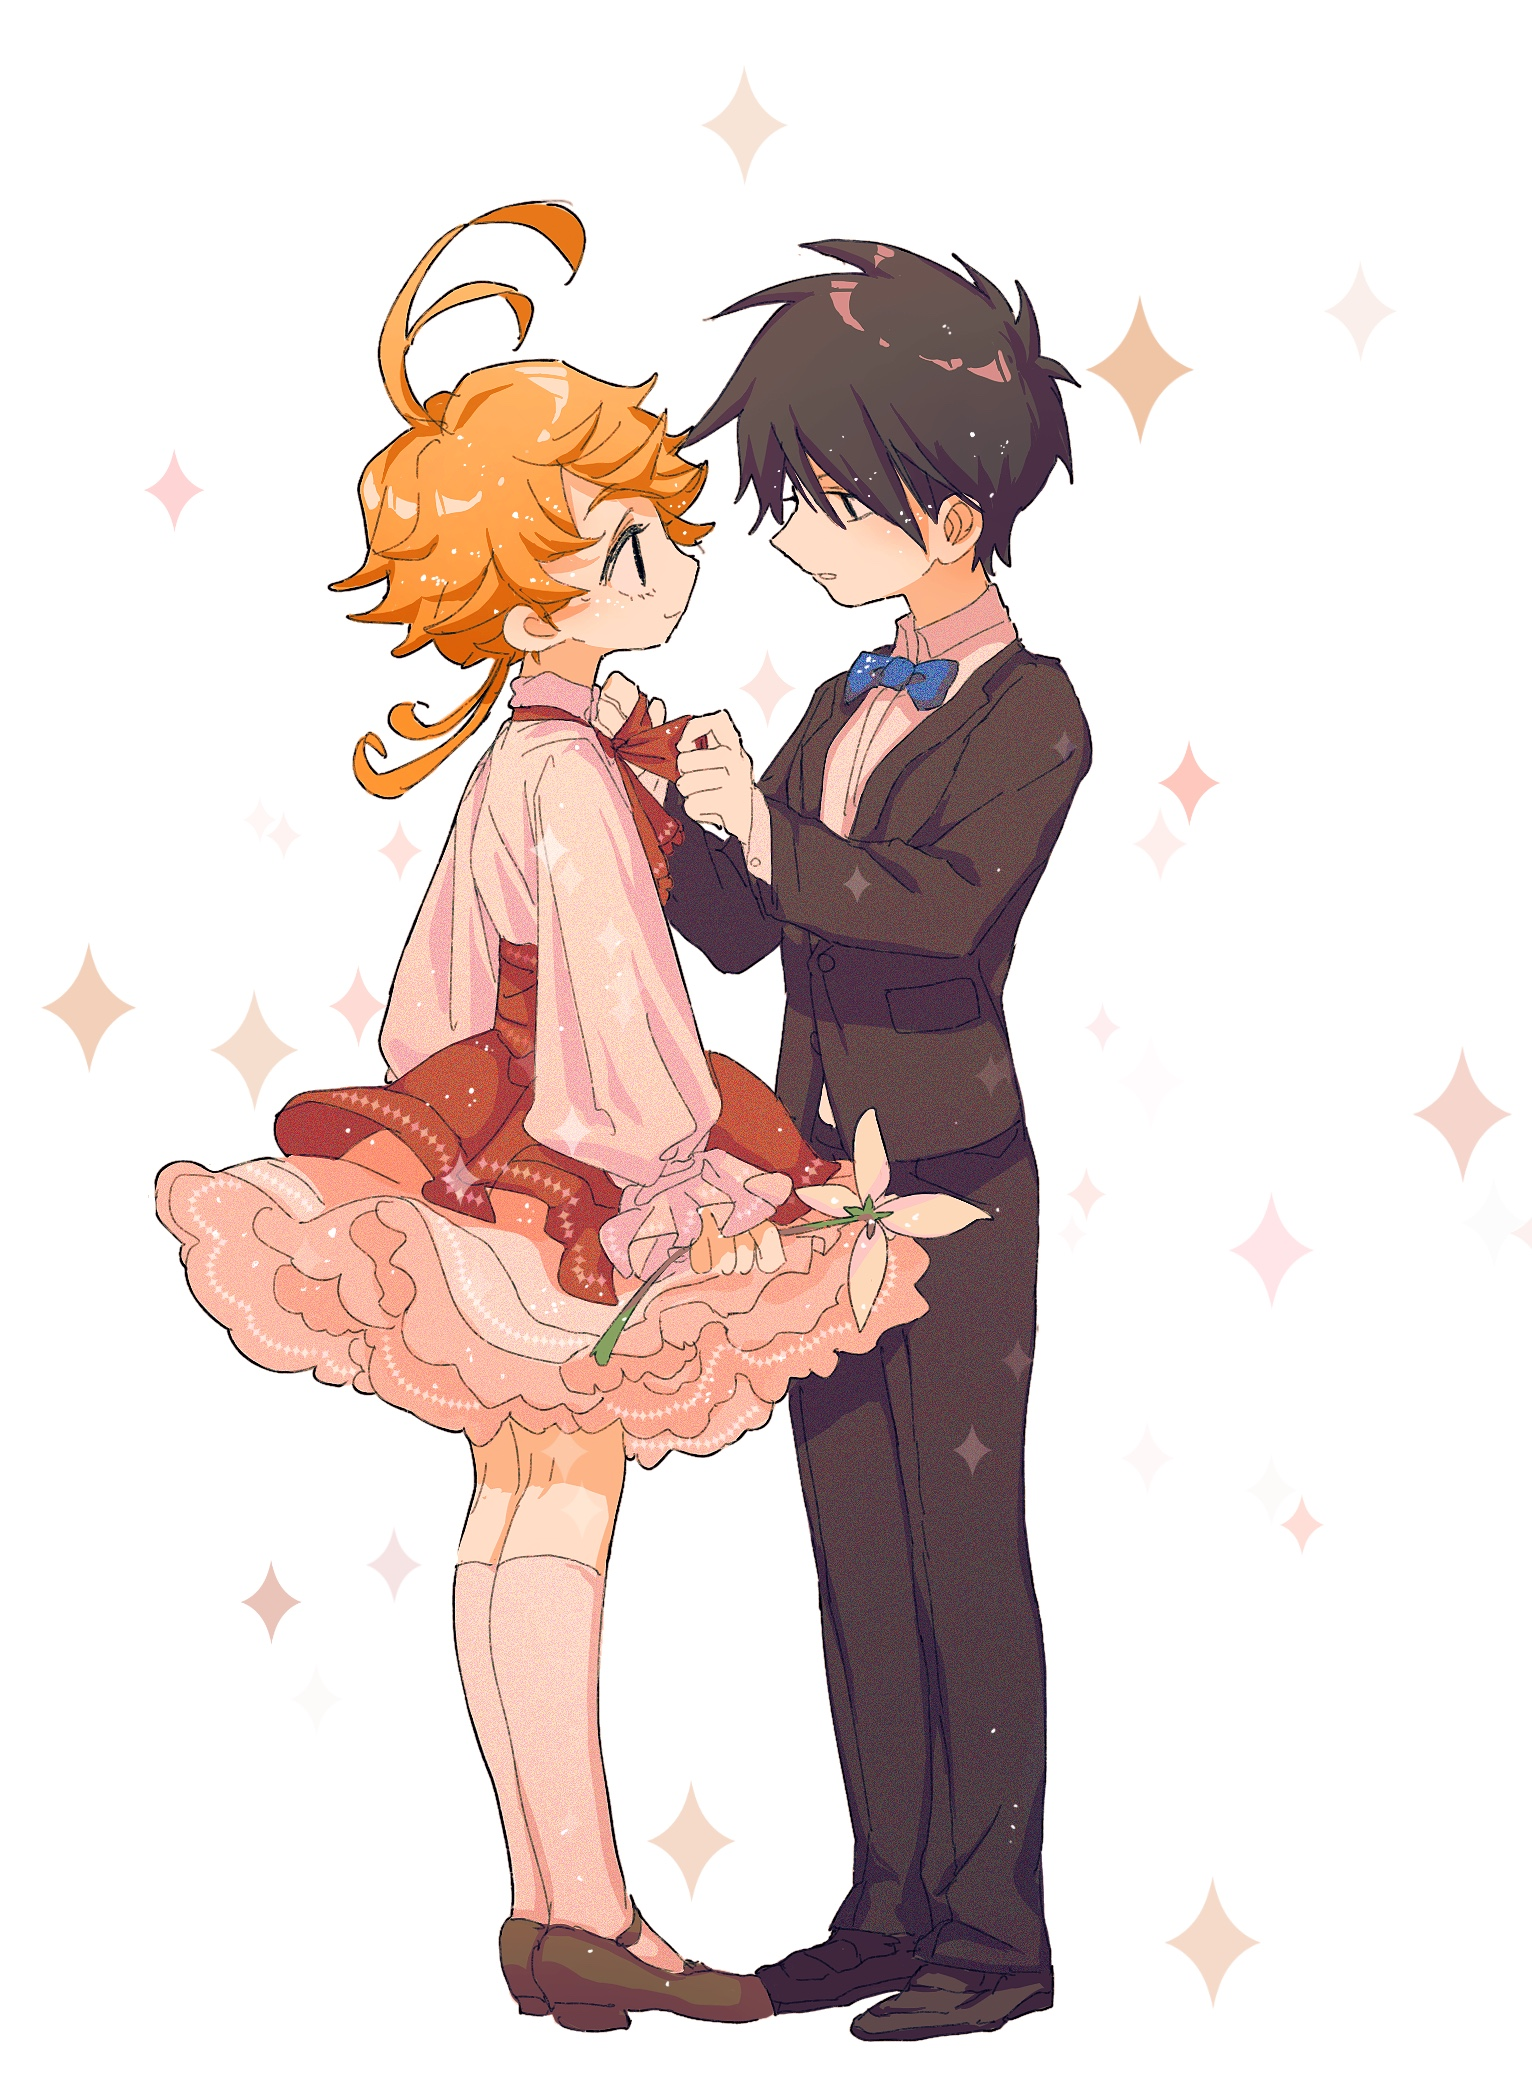 Emma And Ray By Pixiv Id 6709556 Anime Neverland Anime Fanart